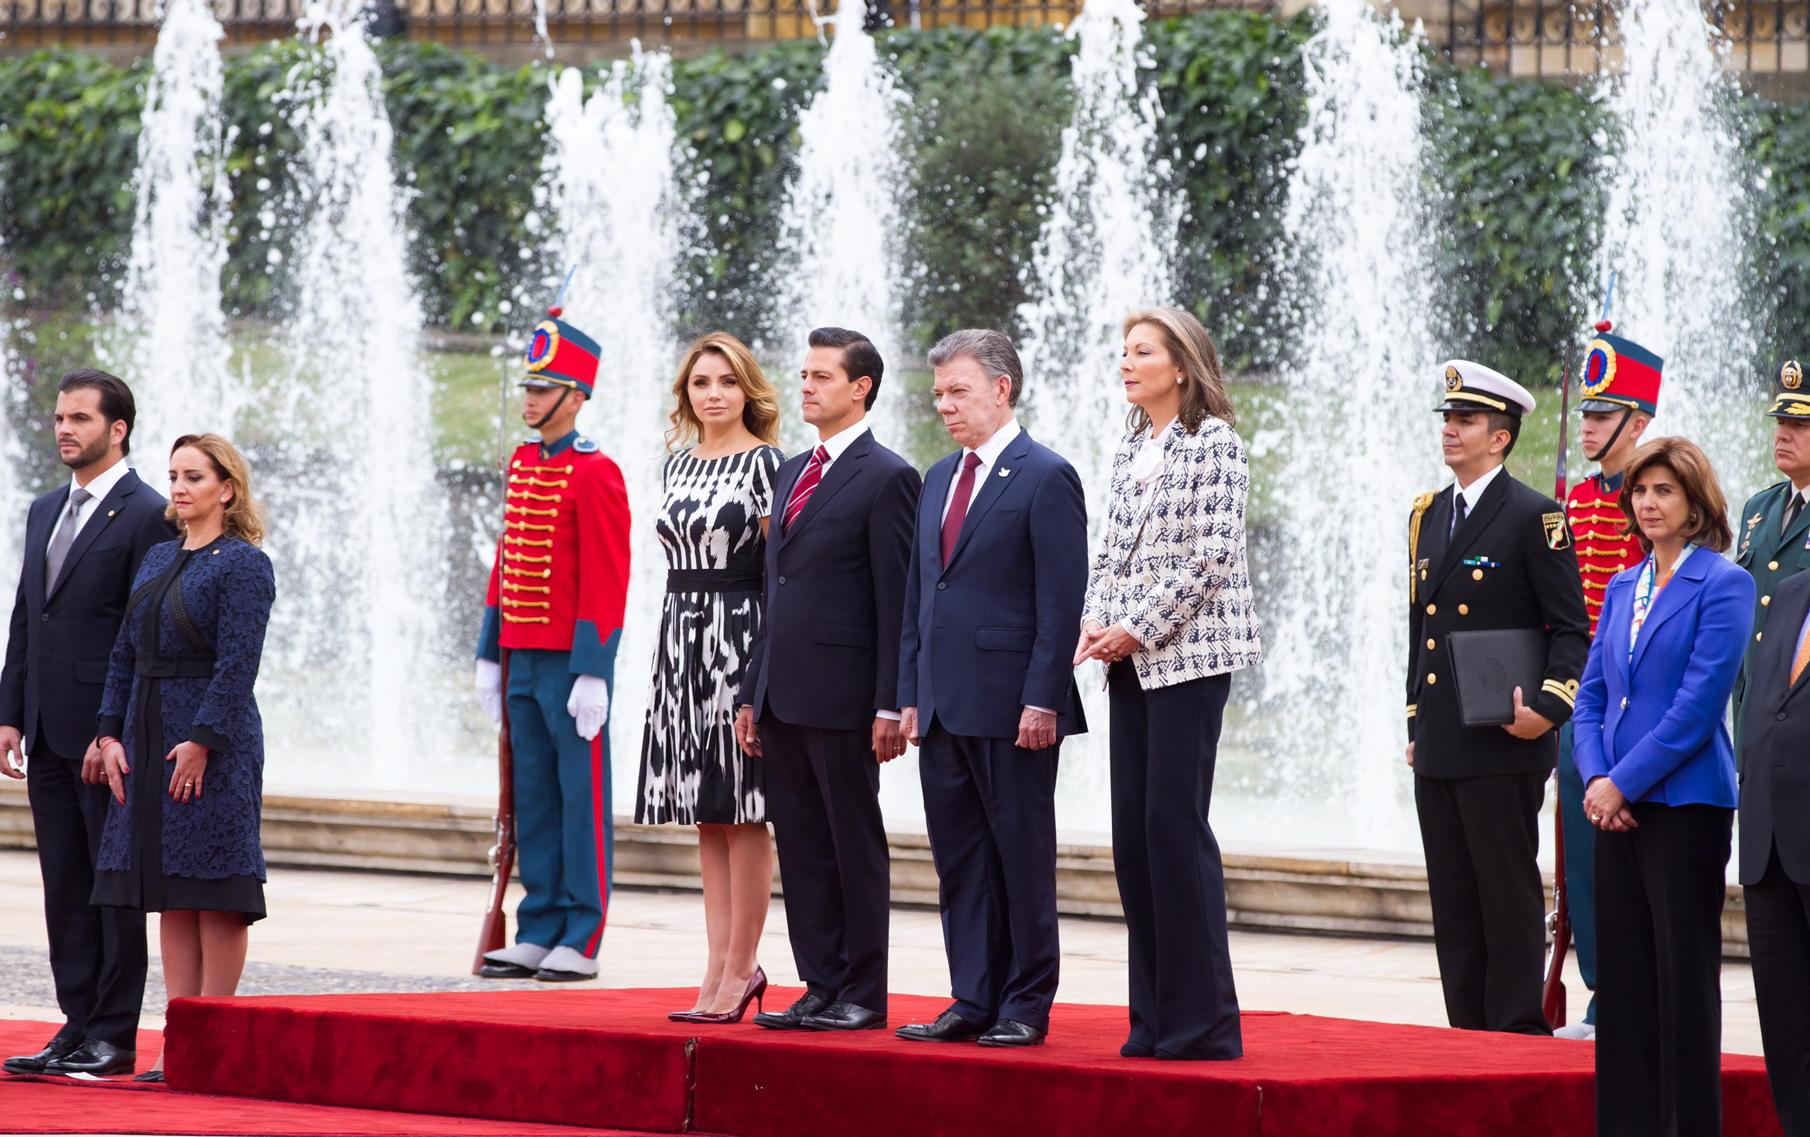 The presidents stressed the importance of ensuring that Colombia and Mexico regard their strategic relationship as a privileged axis for their political, economic, social and cultural ties.